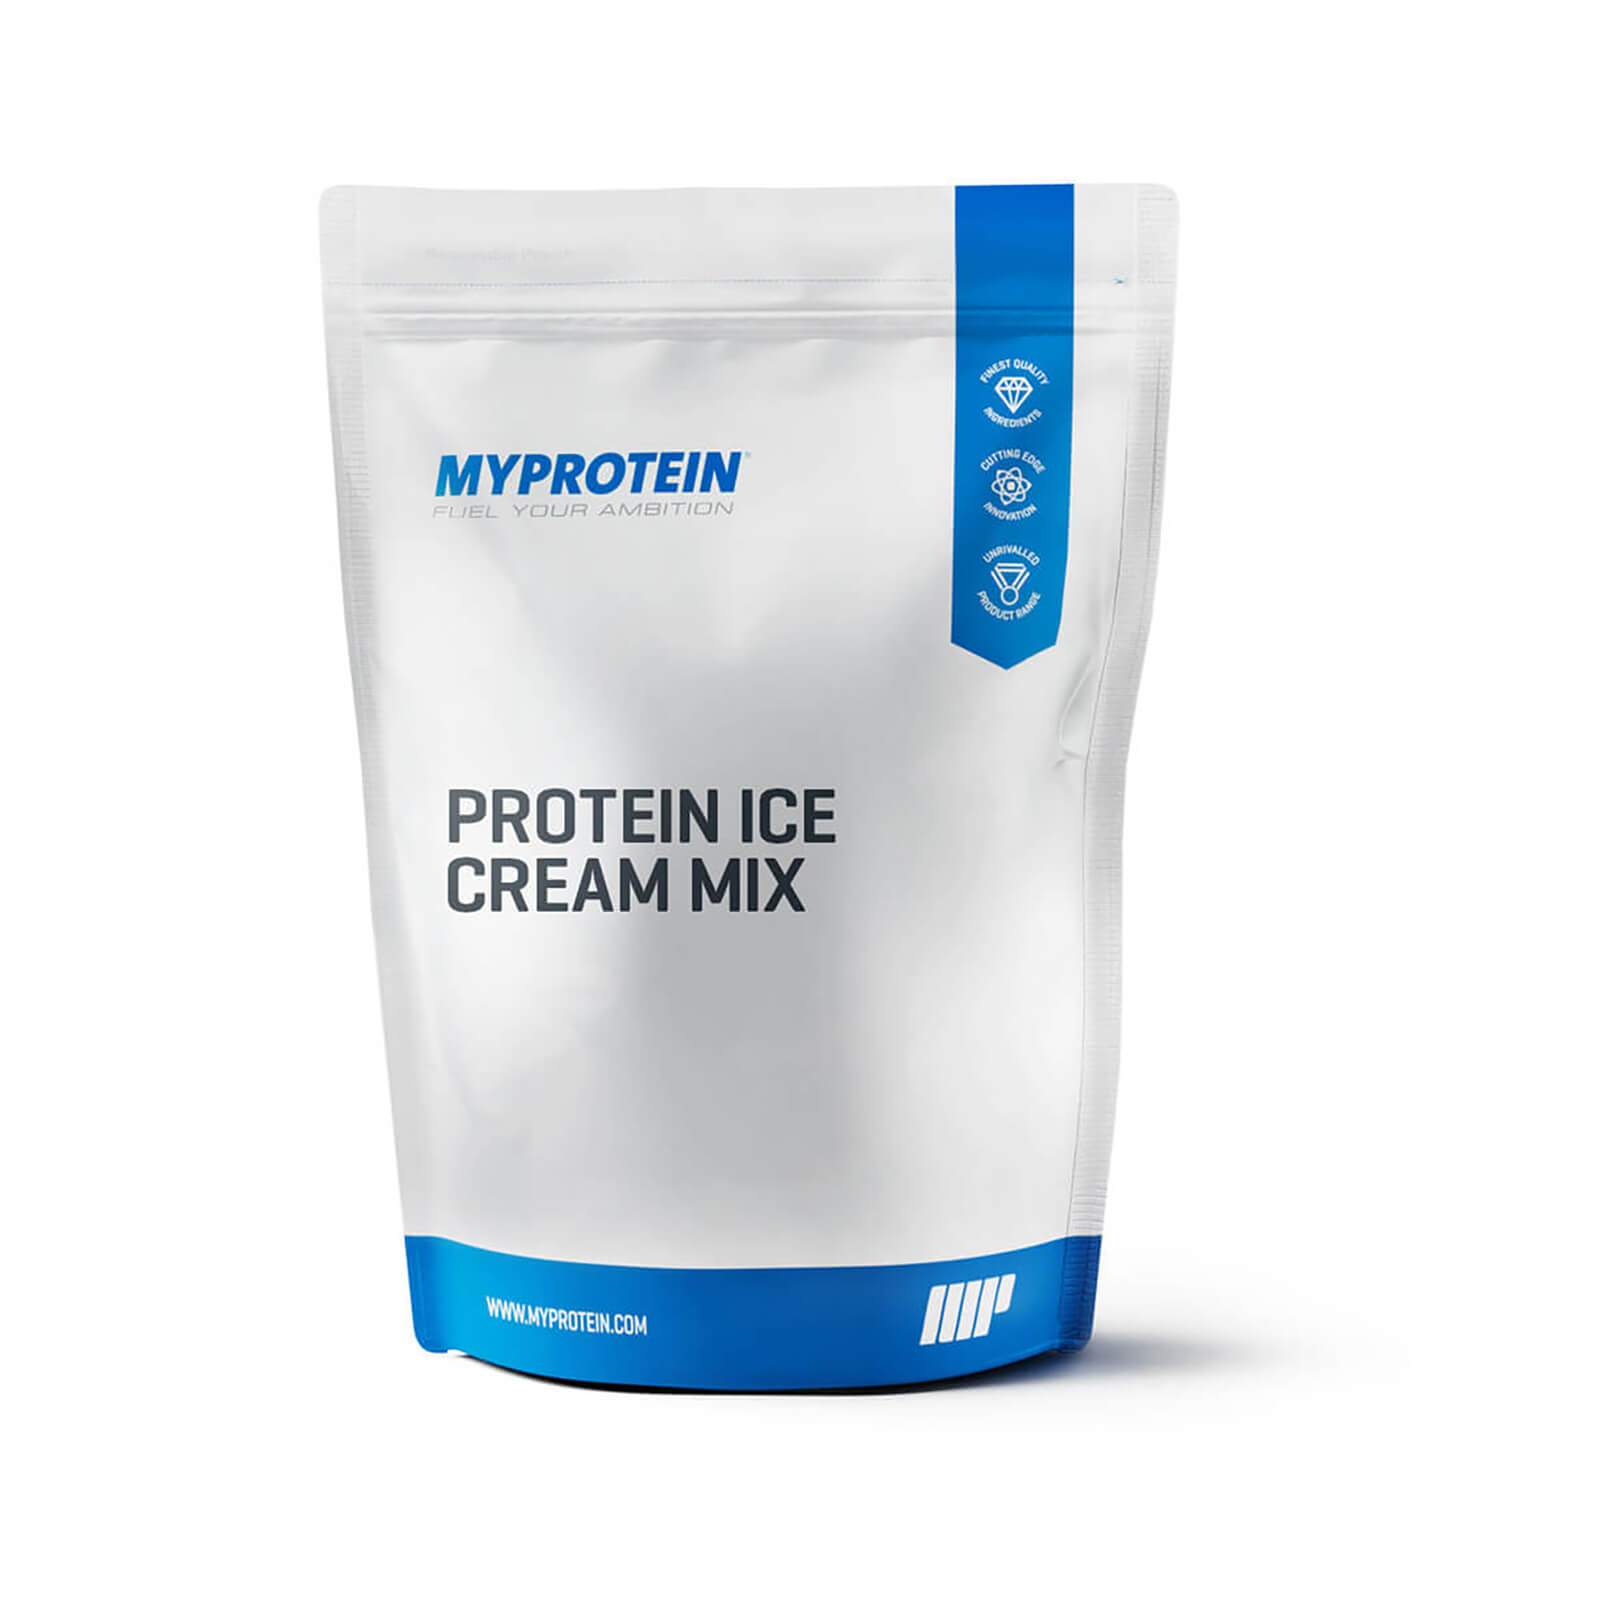 Protein Ice Cream Mix, Chocolate, 1kg